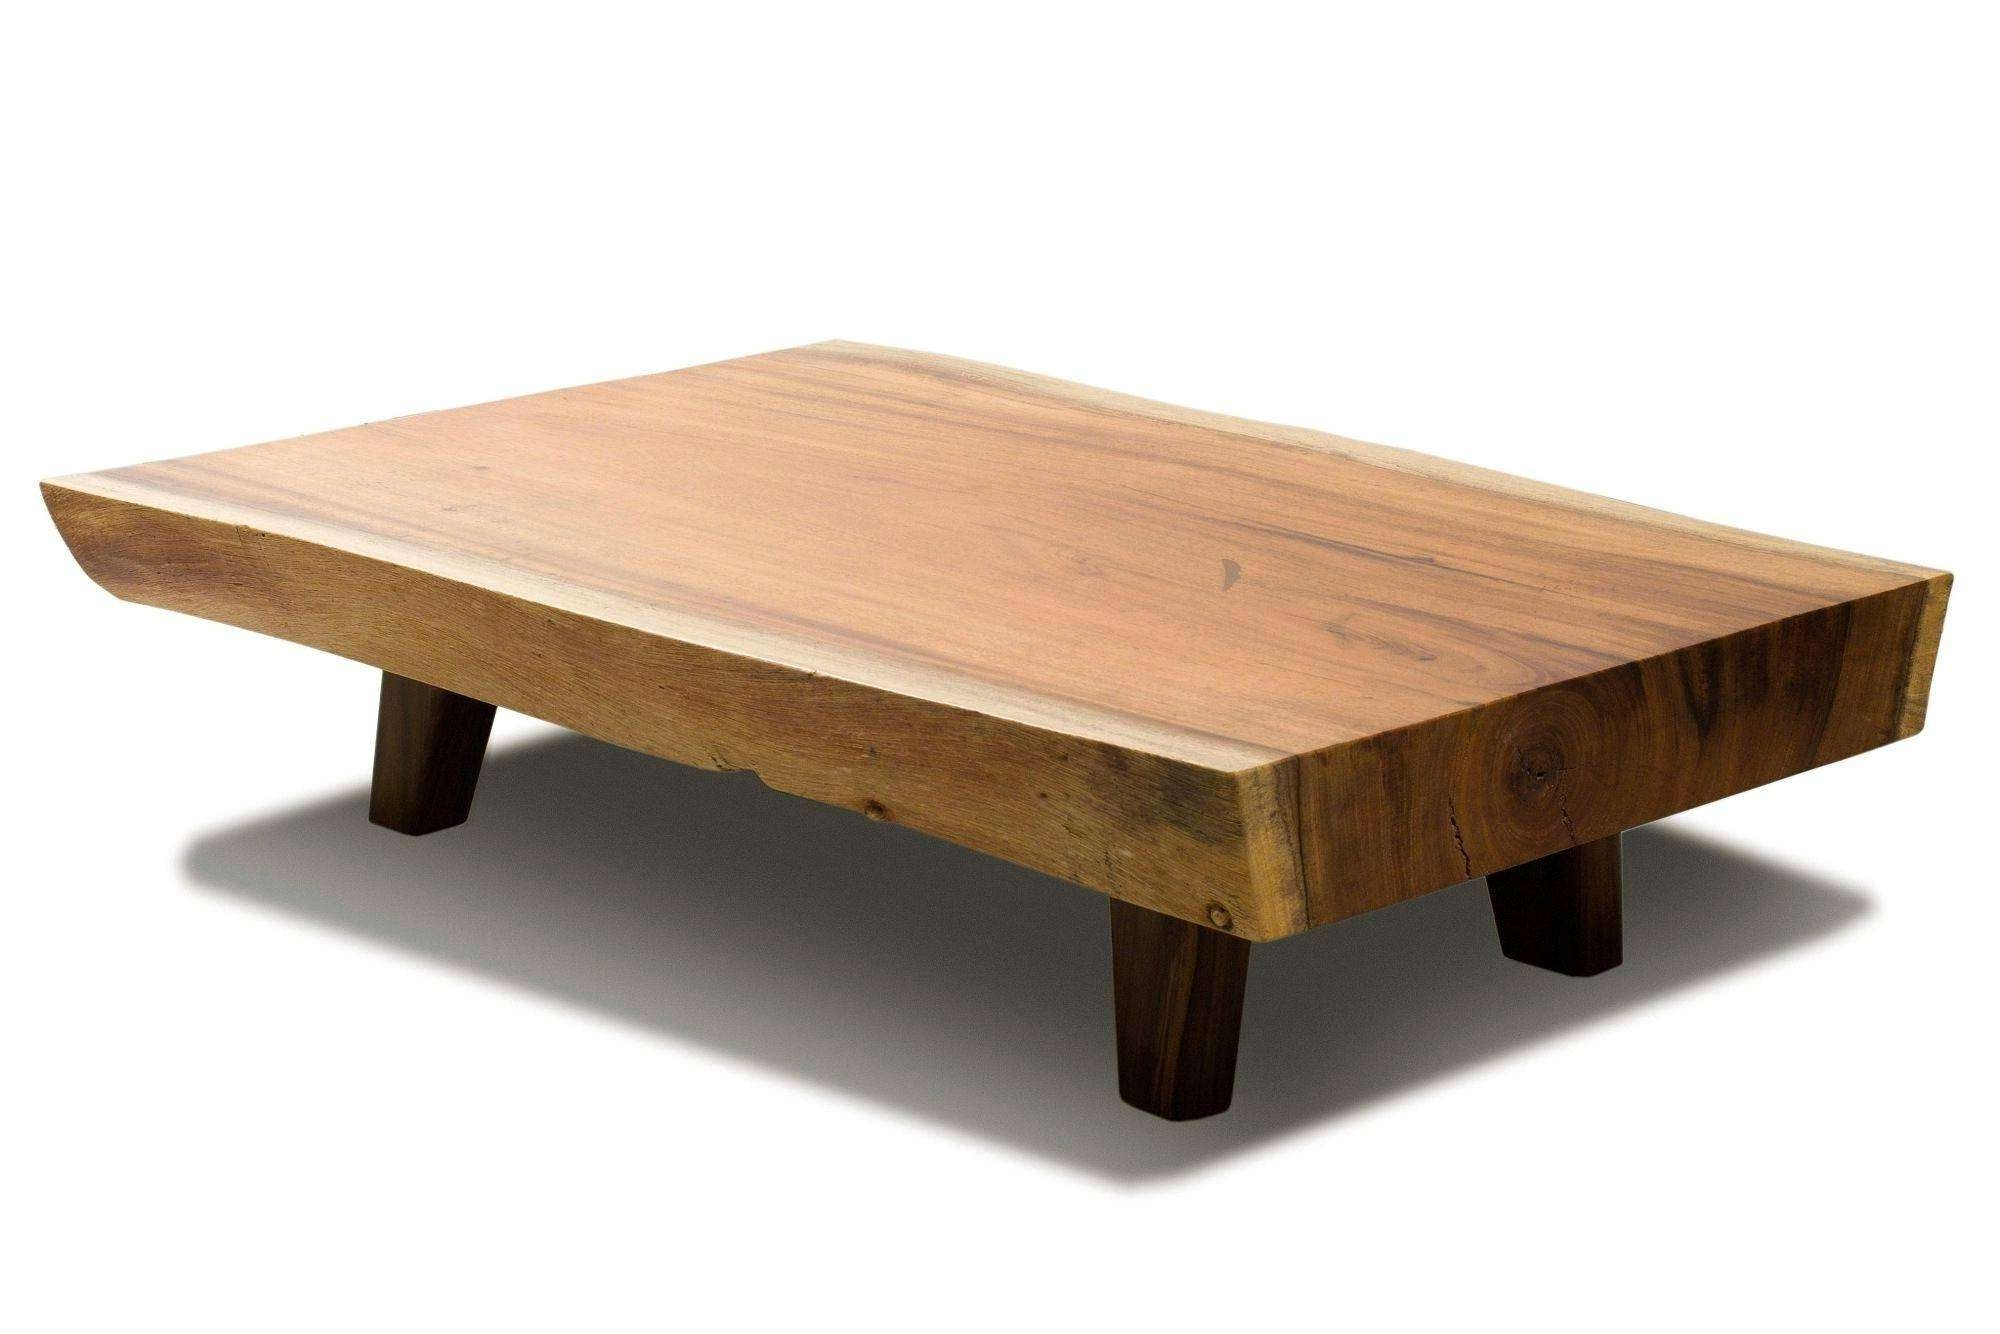 Well Known Low Wooden Coffee Tables Throughout Coffee Table : Popular Large Low Wood Coffee Tables Raw Edge Table (View 5 of 20)